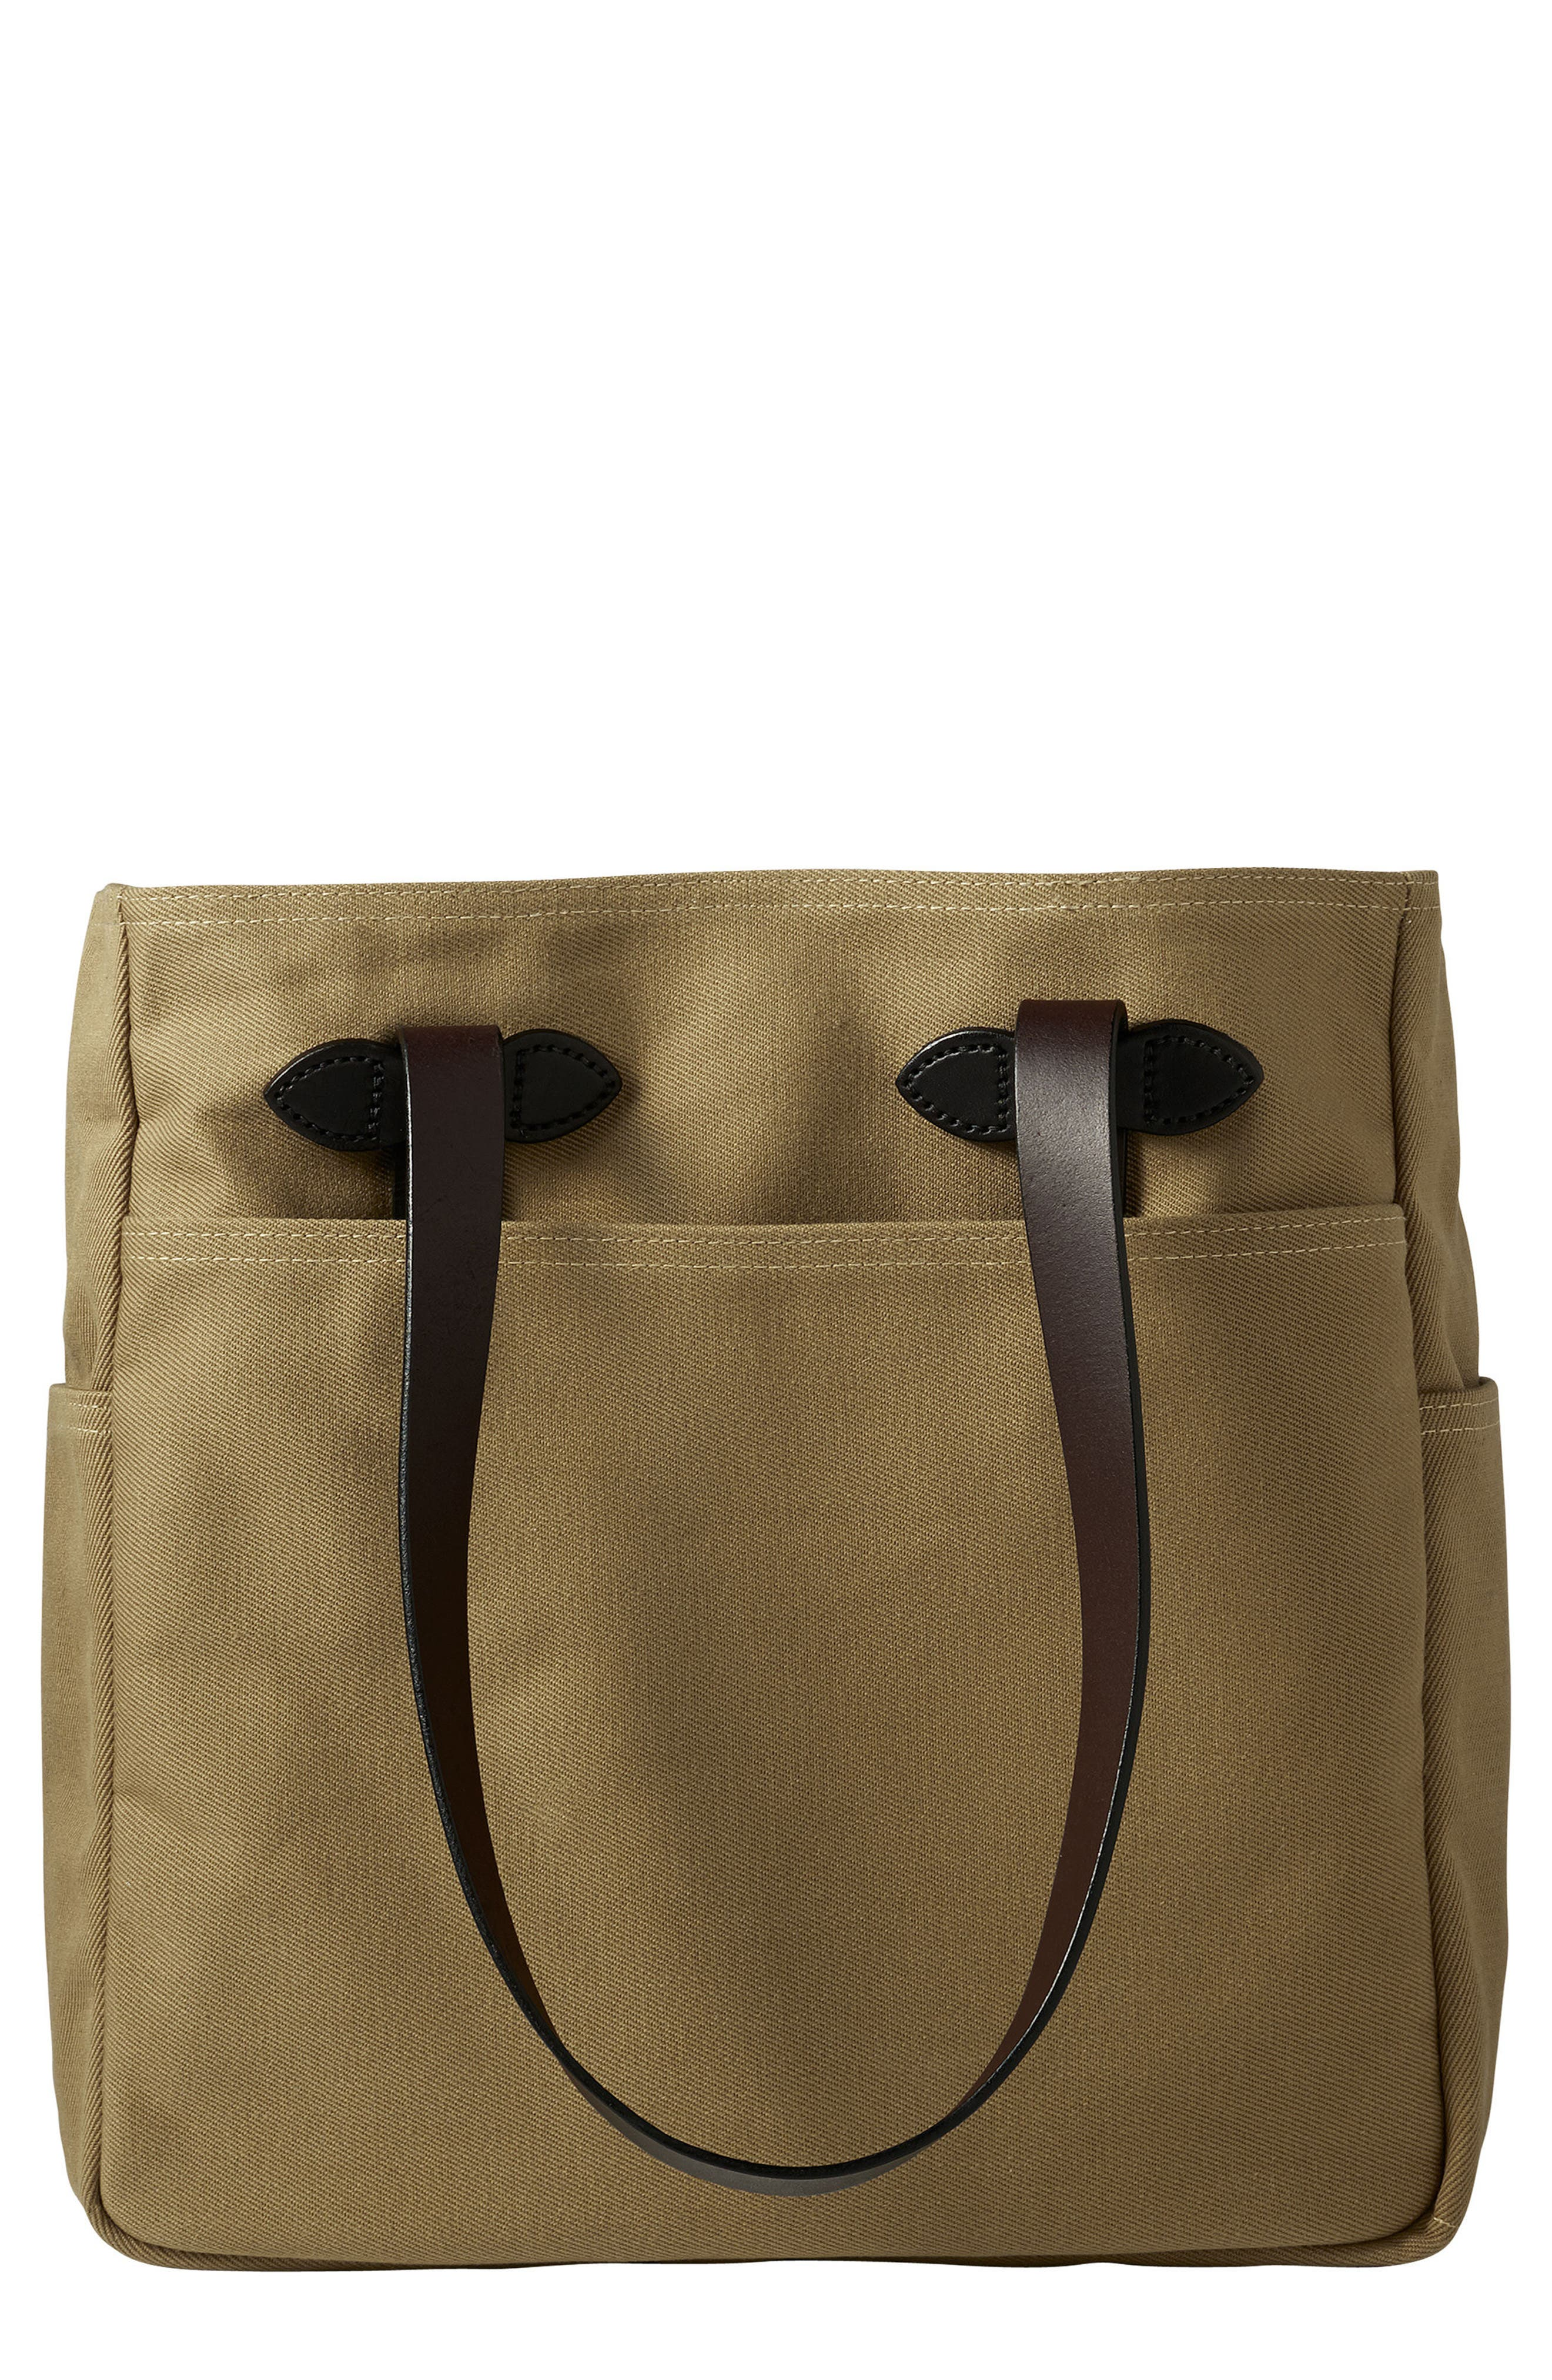 Rugged Twill Tote Bag,                         Main,                         color, 242